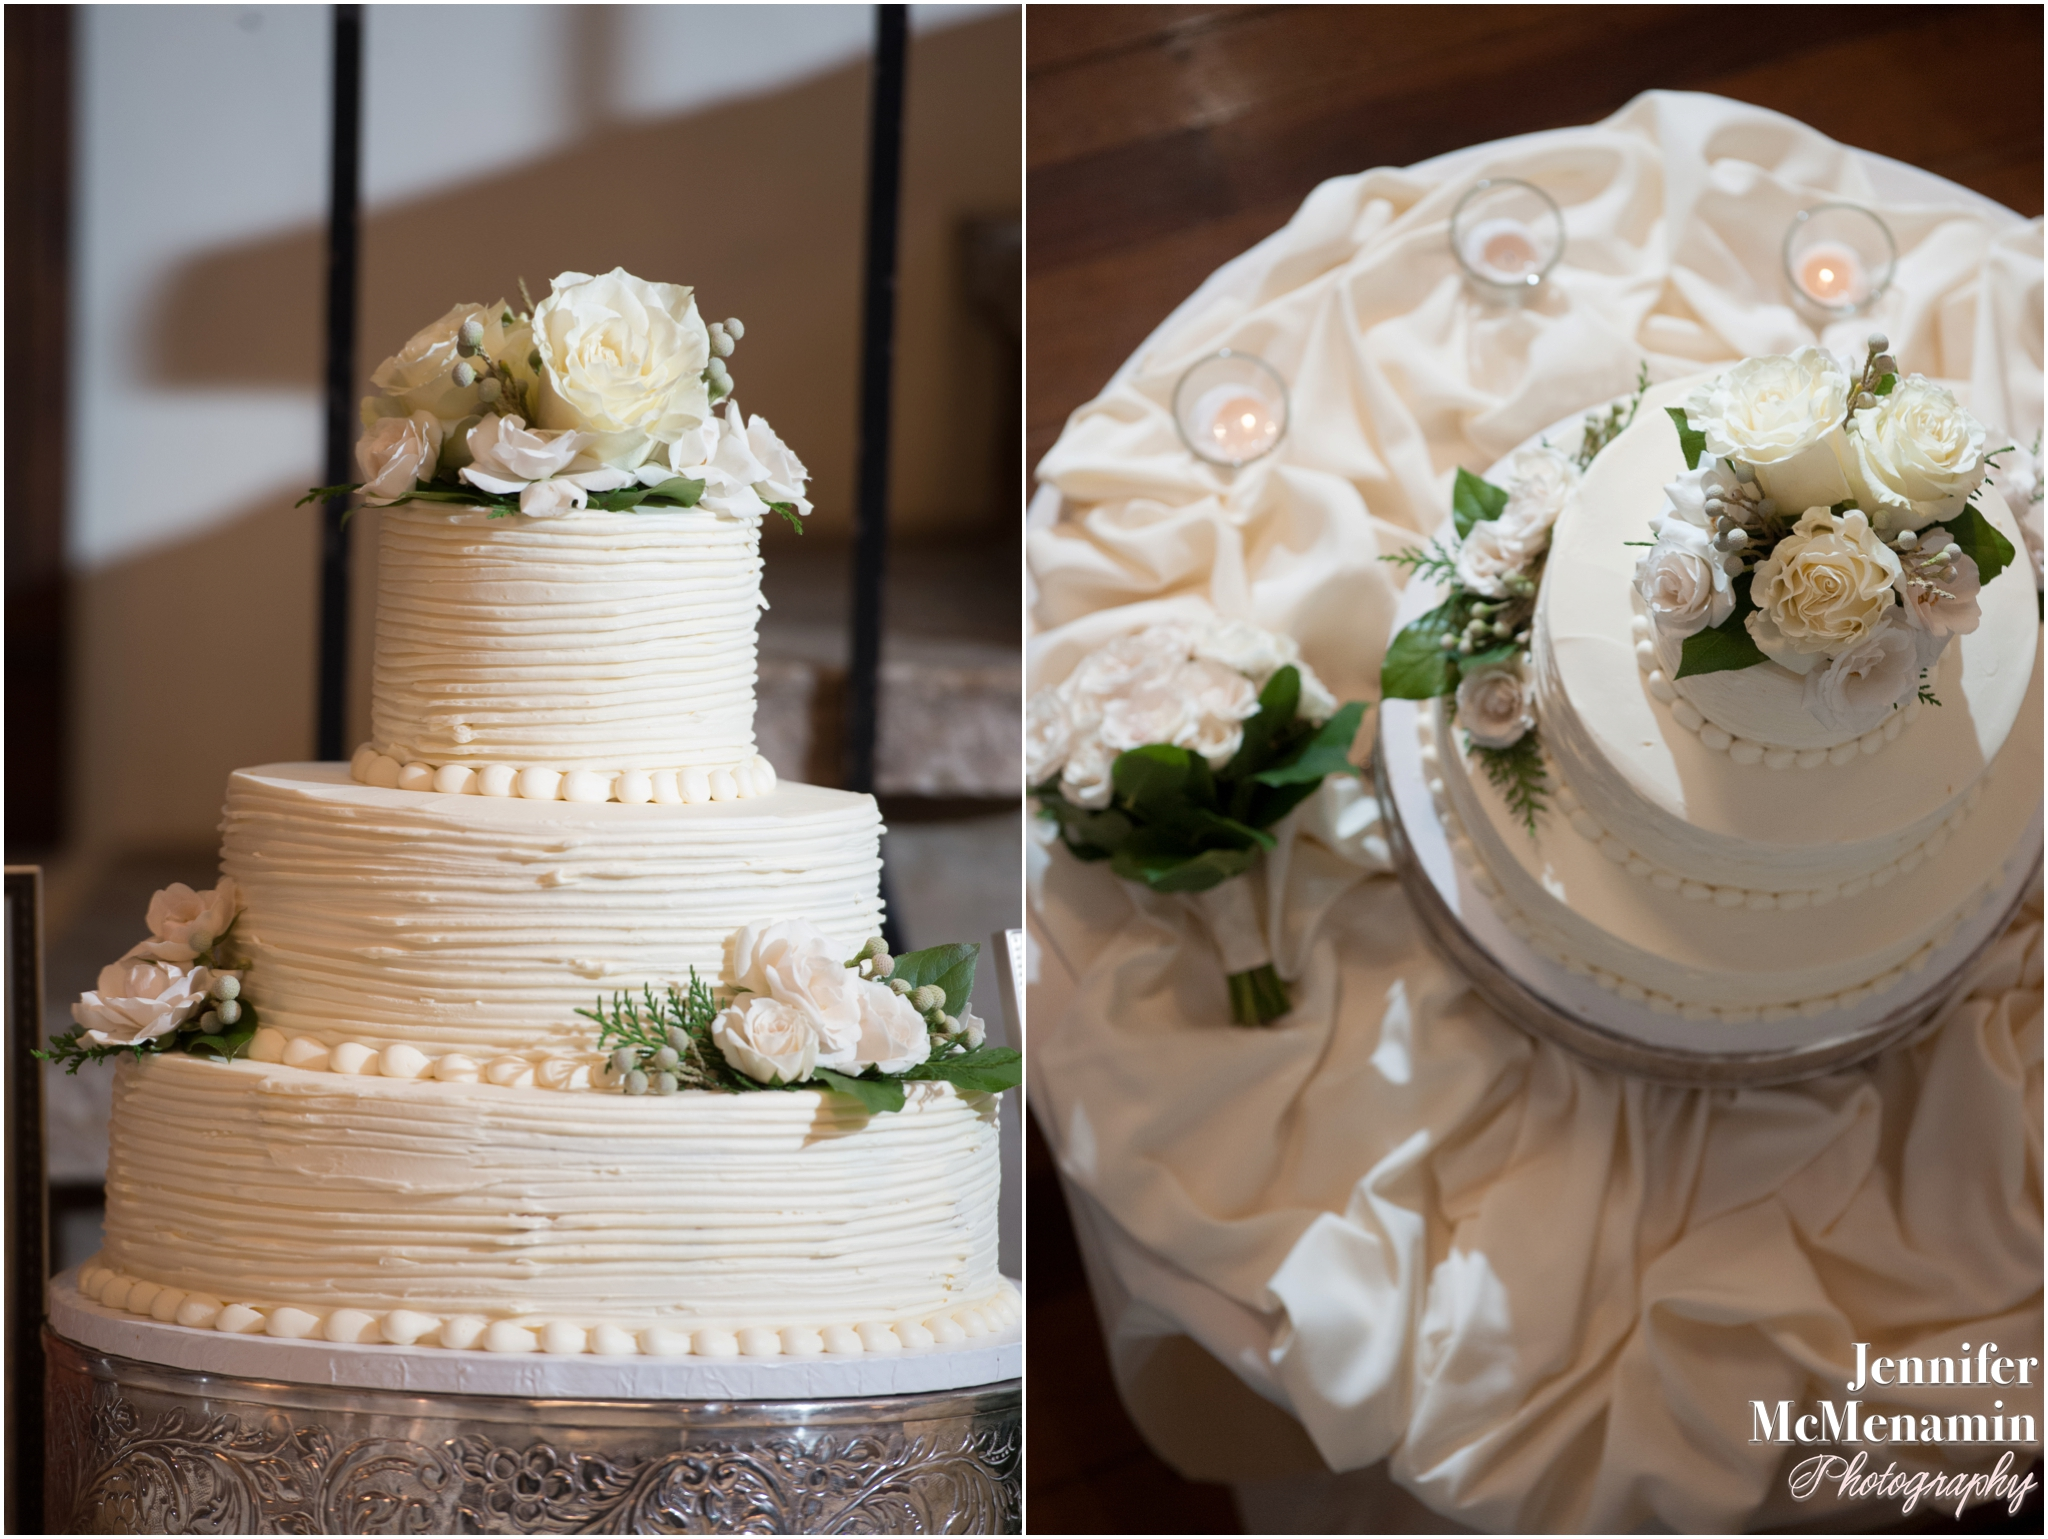 0081_RyanClemmens_02236-0609_JenniferMcMenaminPhotography_Immaculate-Conception-Church_The-Cloisters_Baltimore-wedding-photography_Baltimore-wedding-photographer